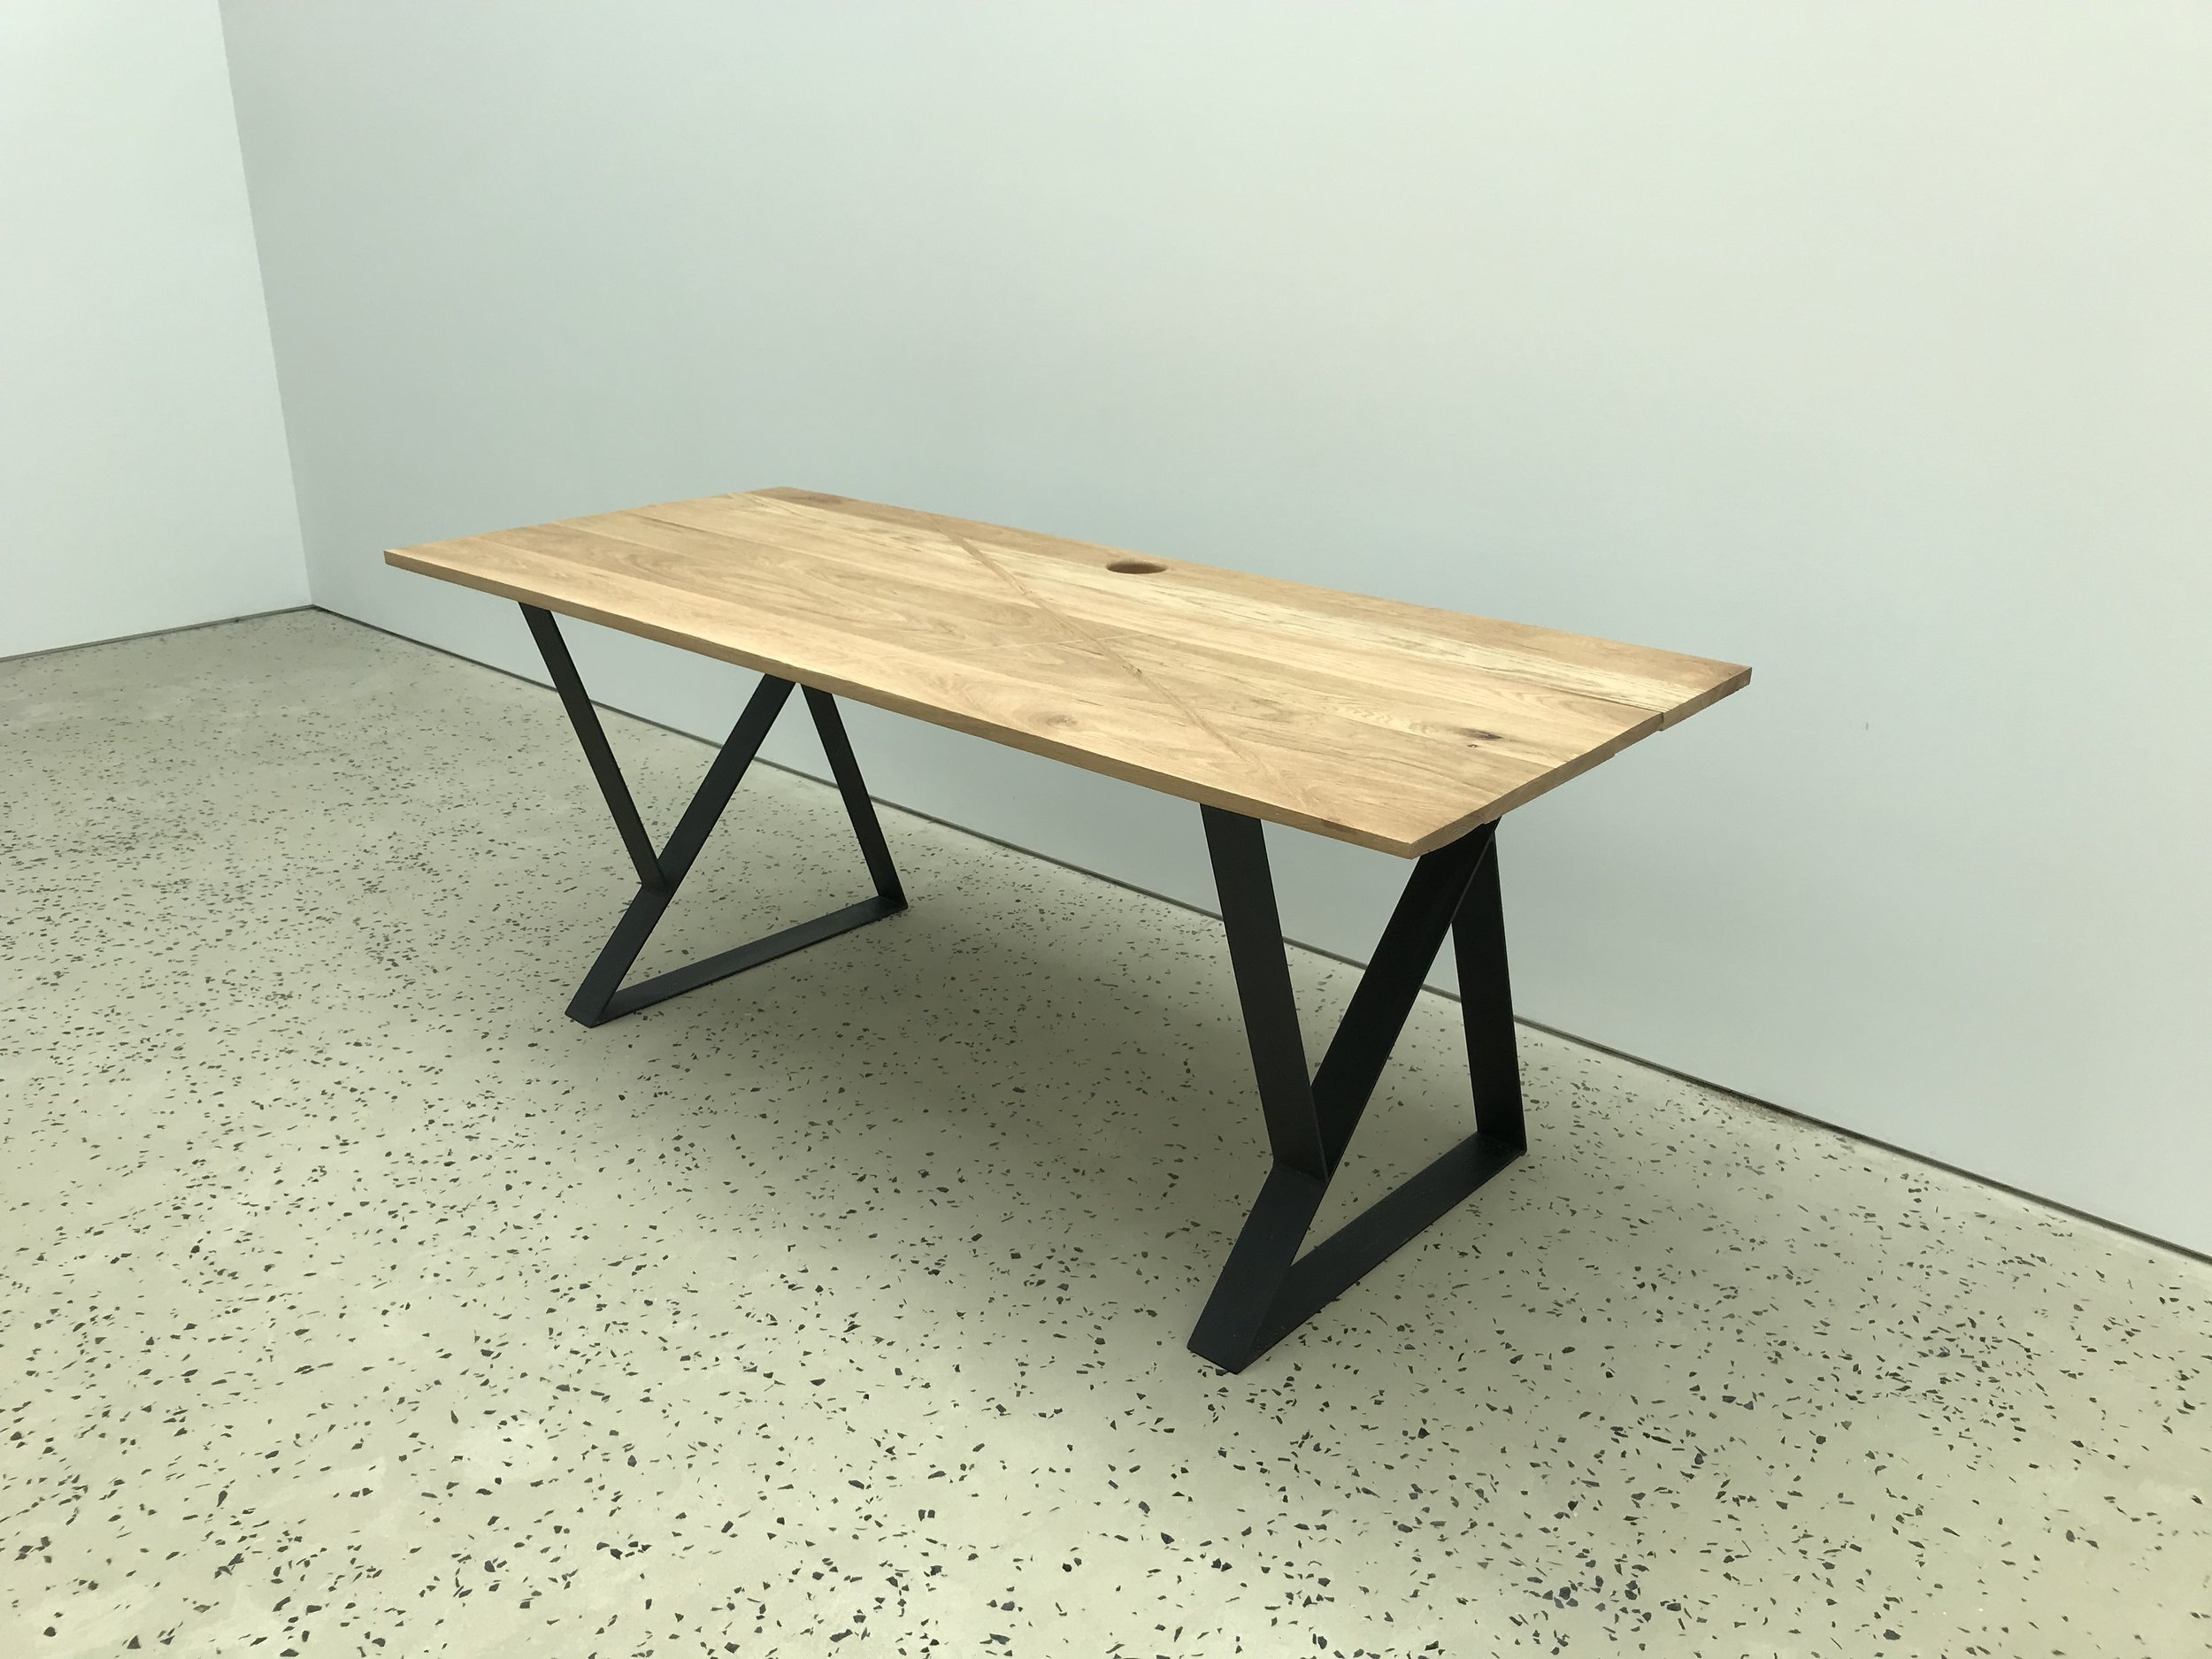 tables - desks, workstations, and dining tables